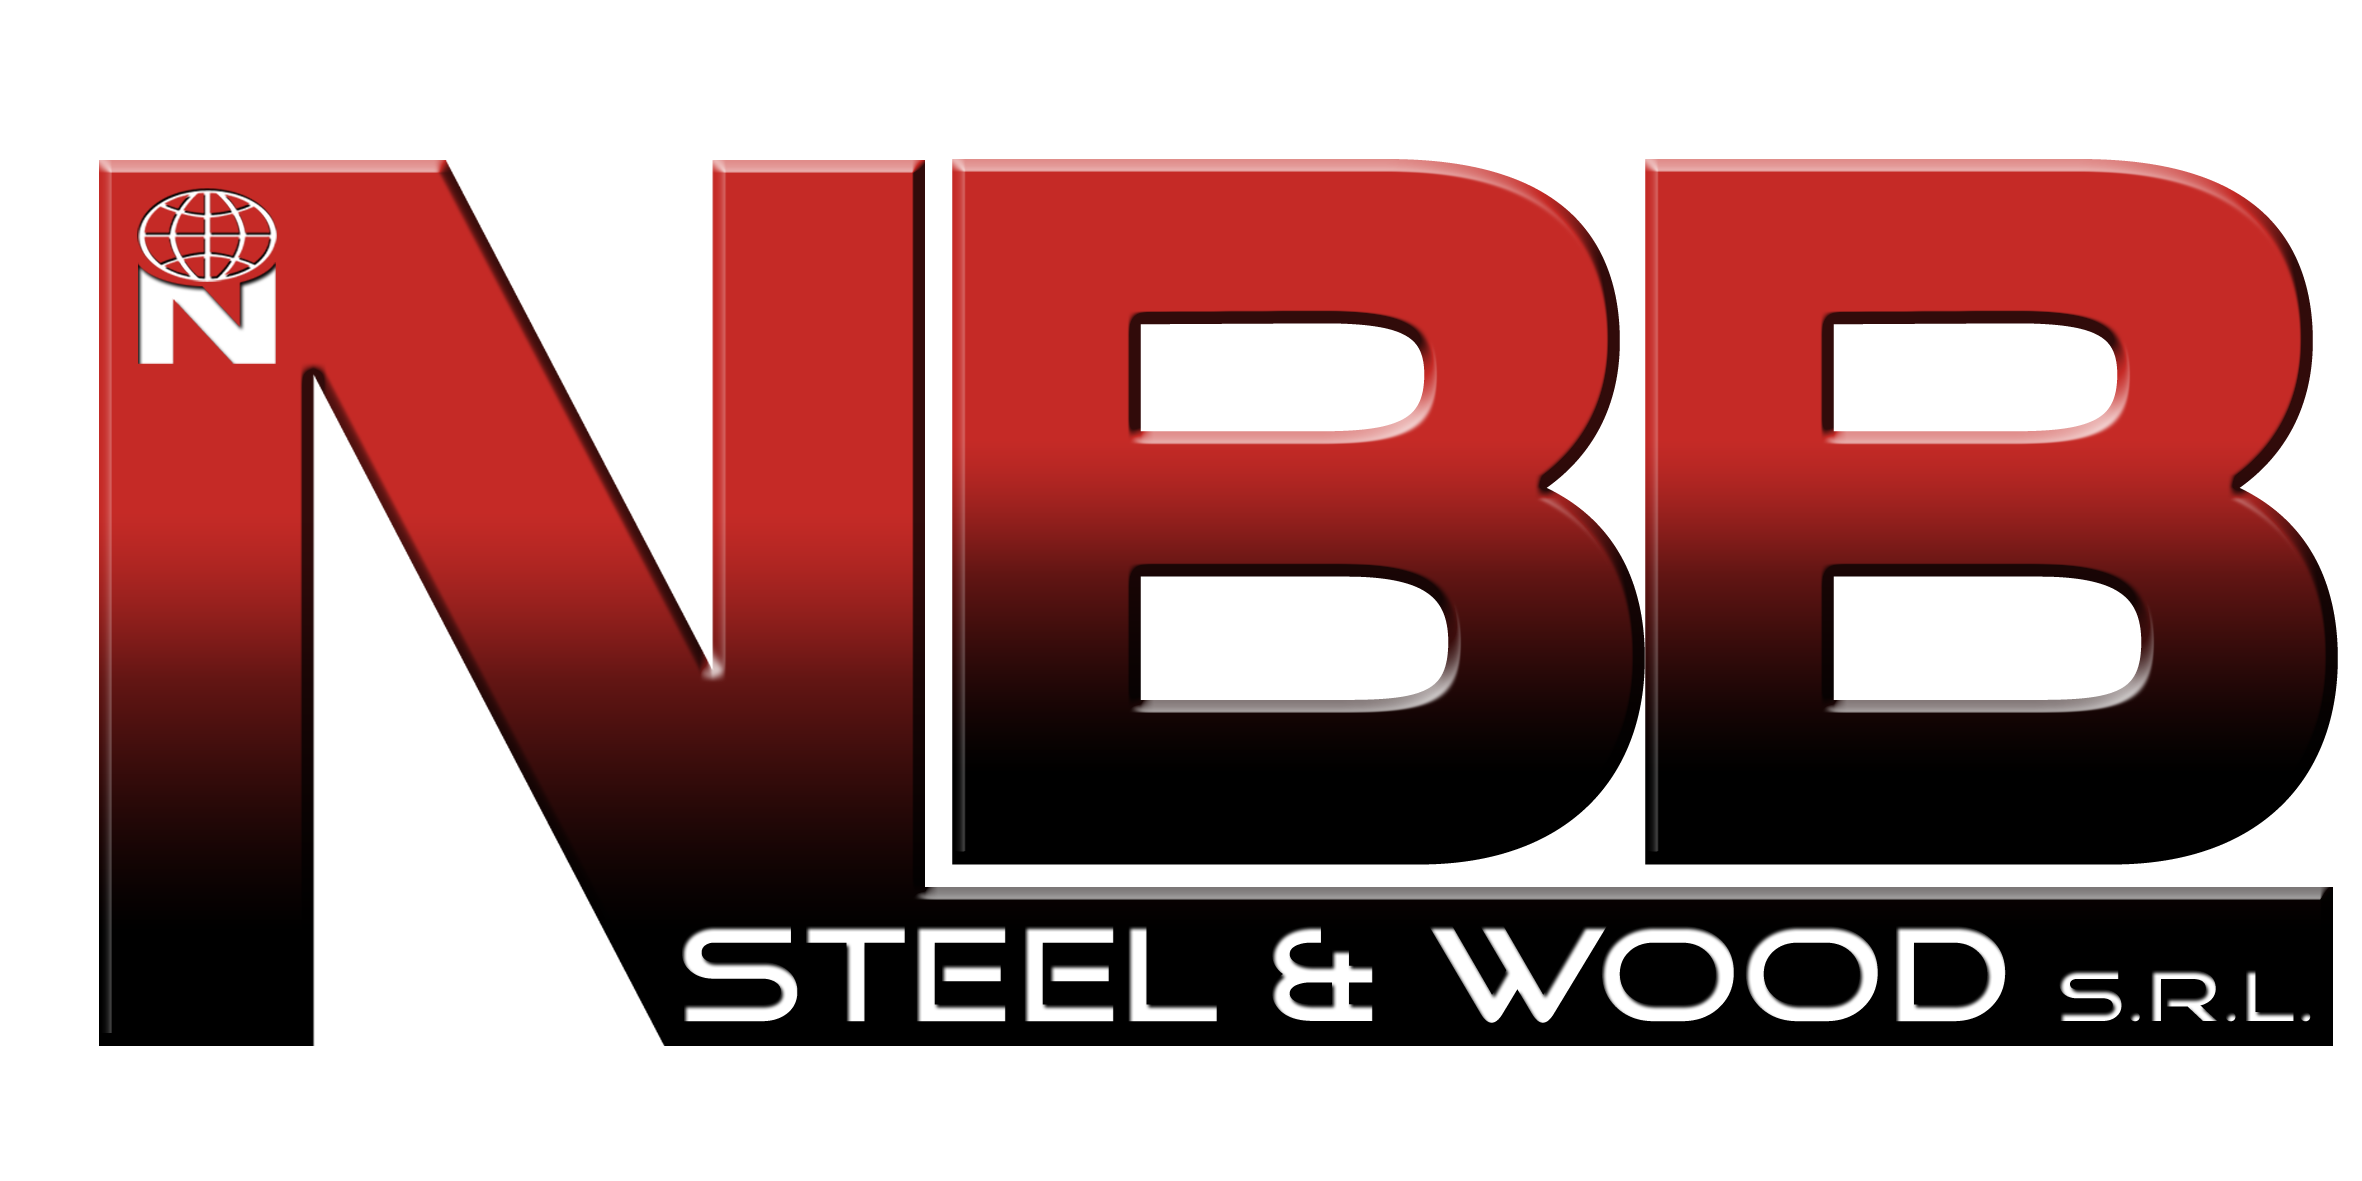 NBB Steel and Wood SRL